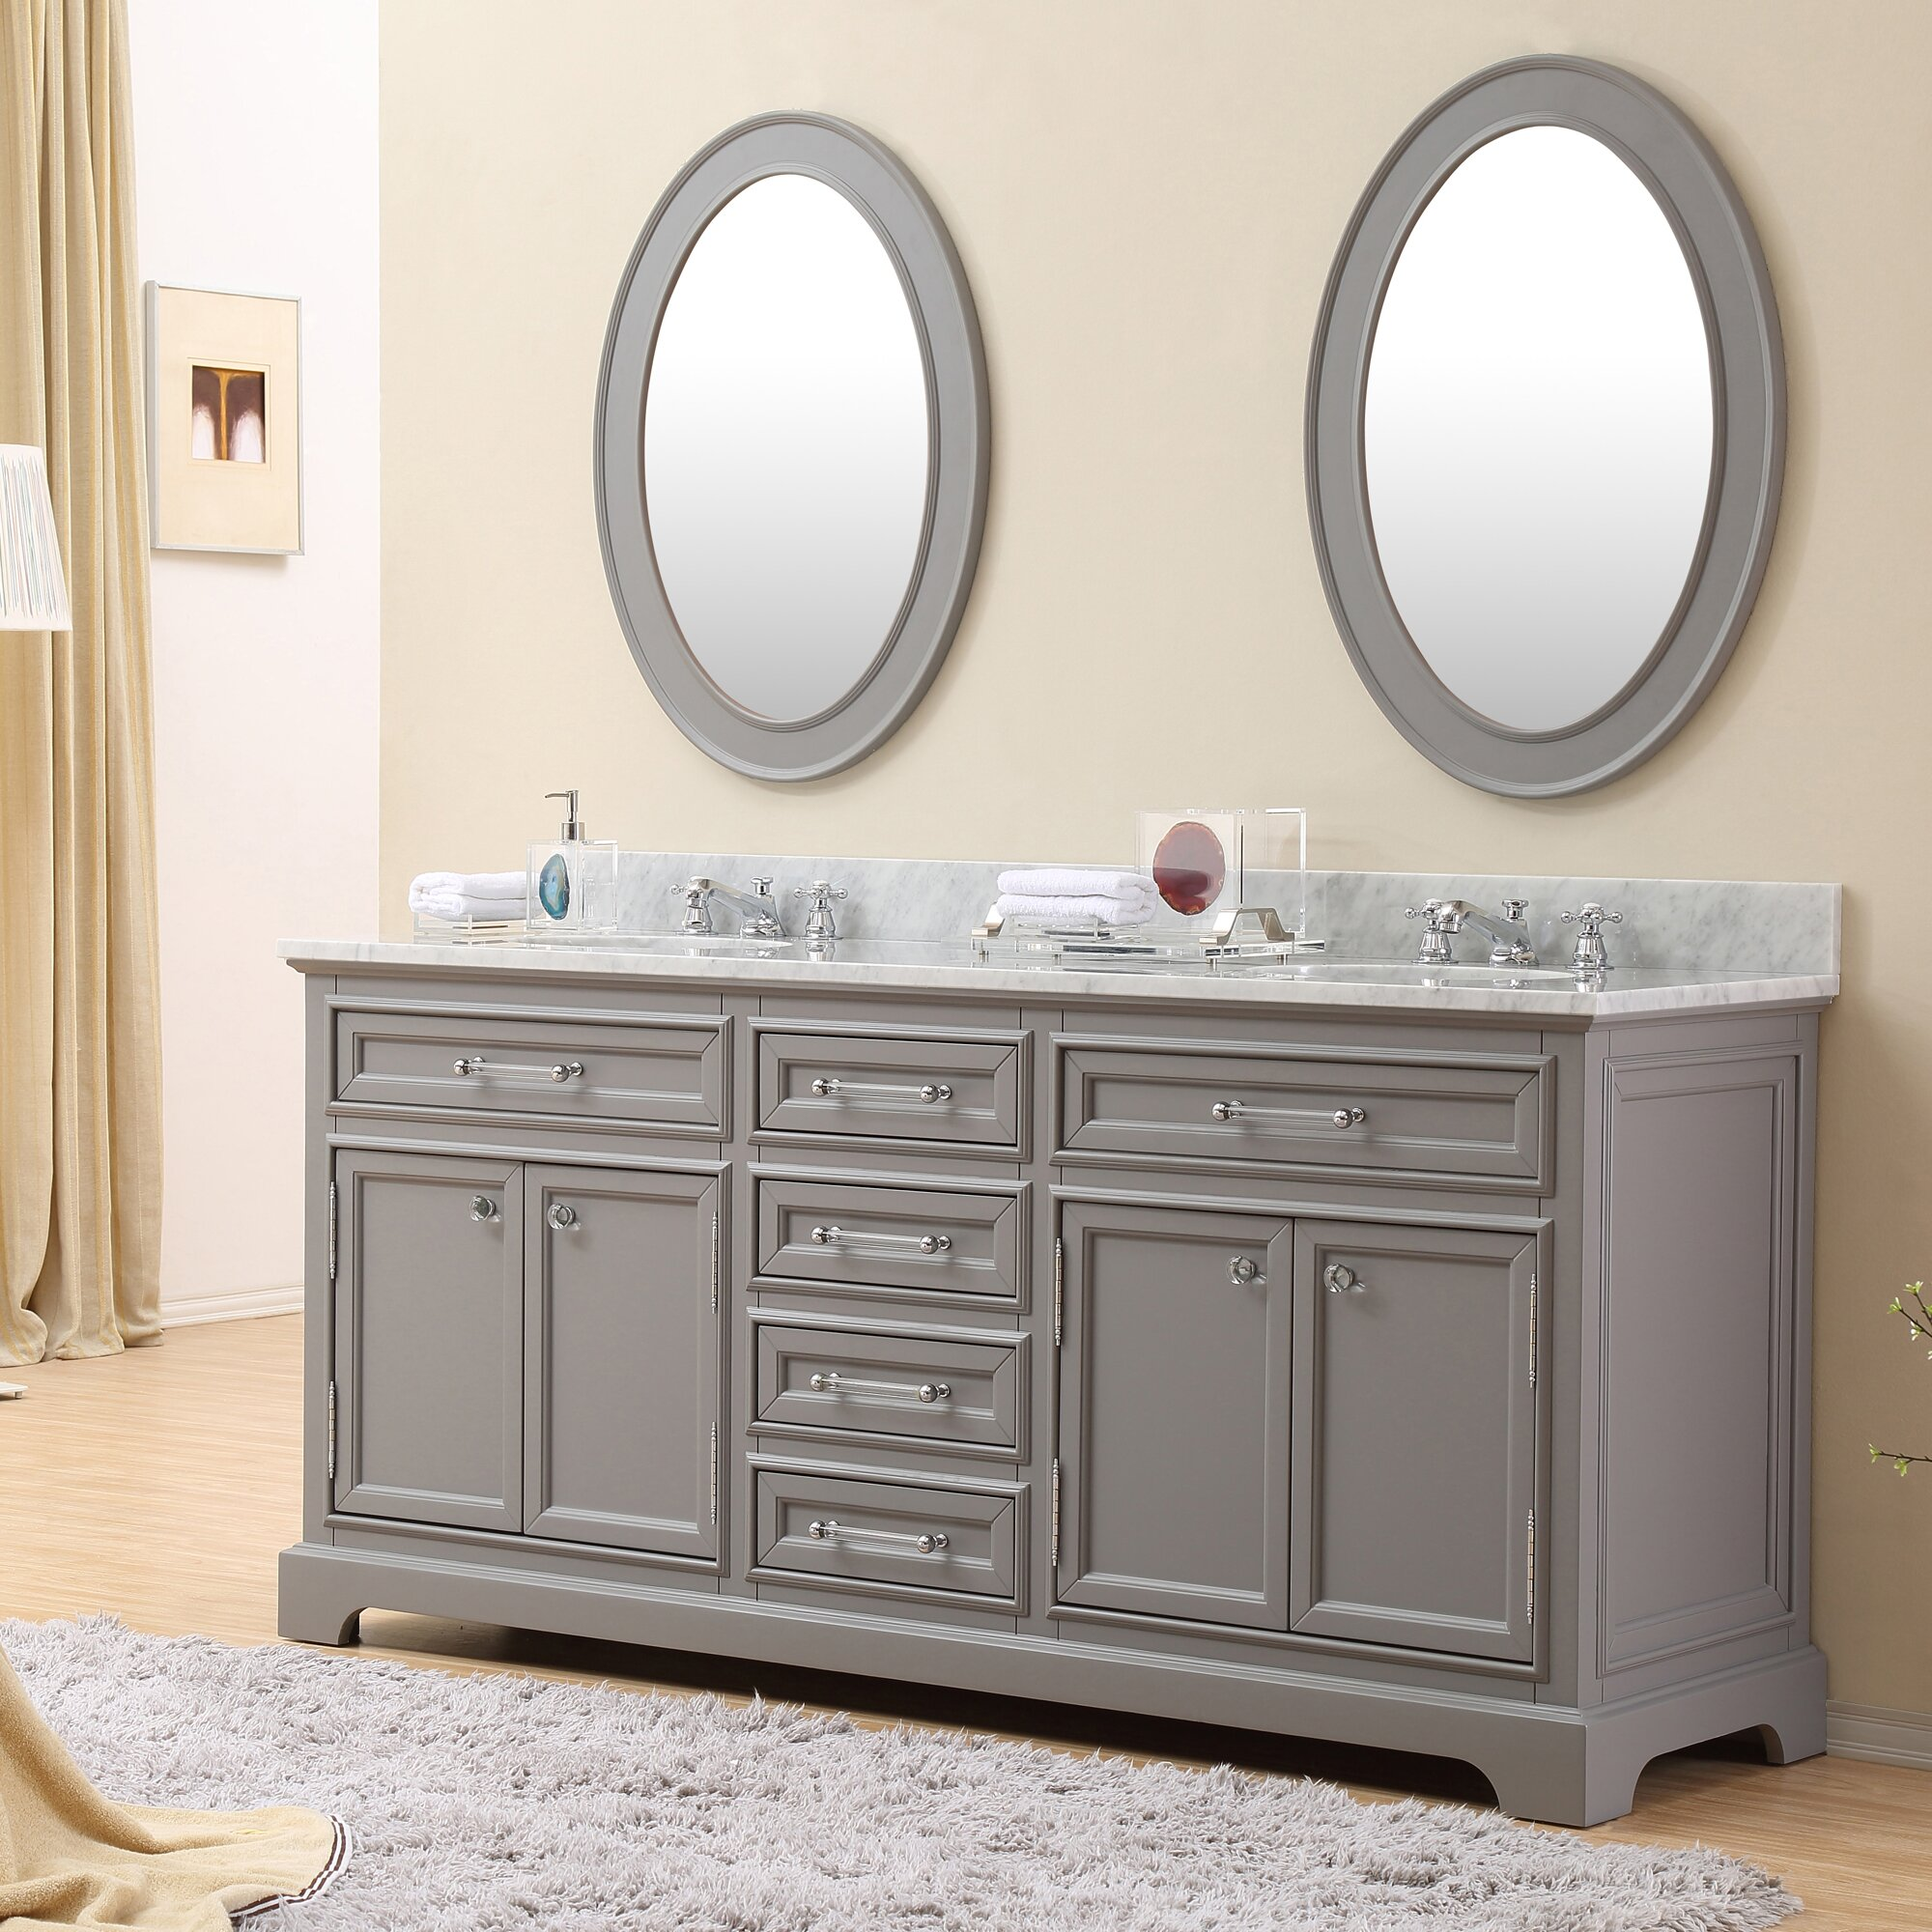 Grey bedroom vanity set : Darby home co colchester quot double sink bathroom vanity